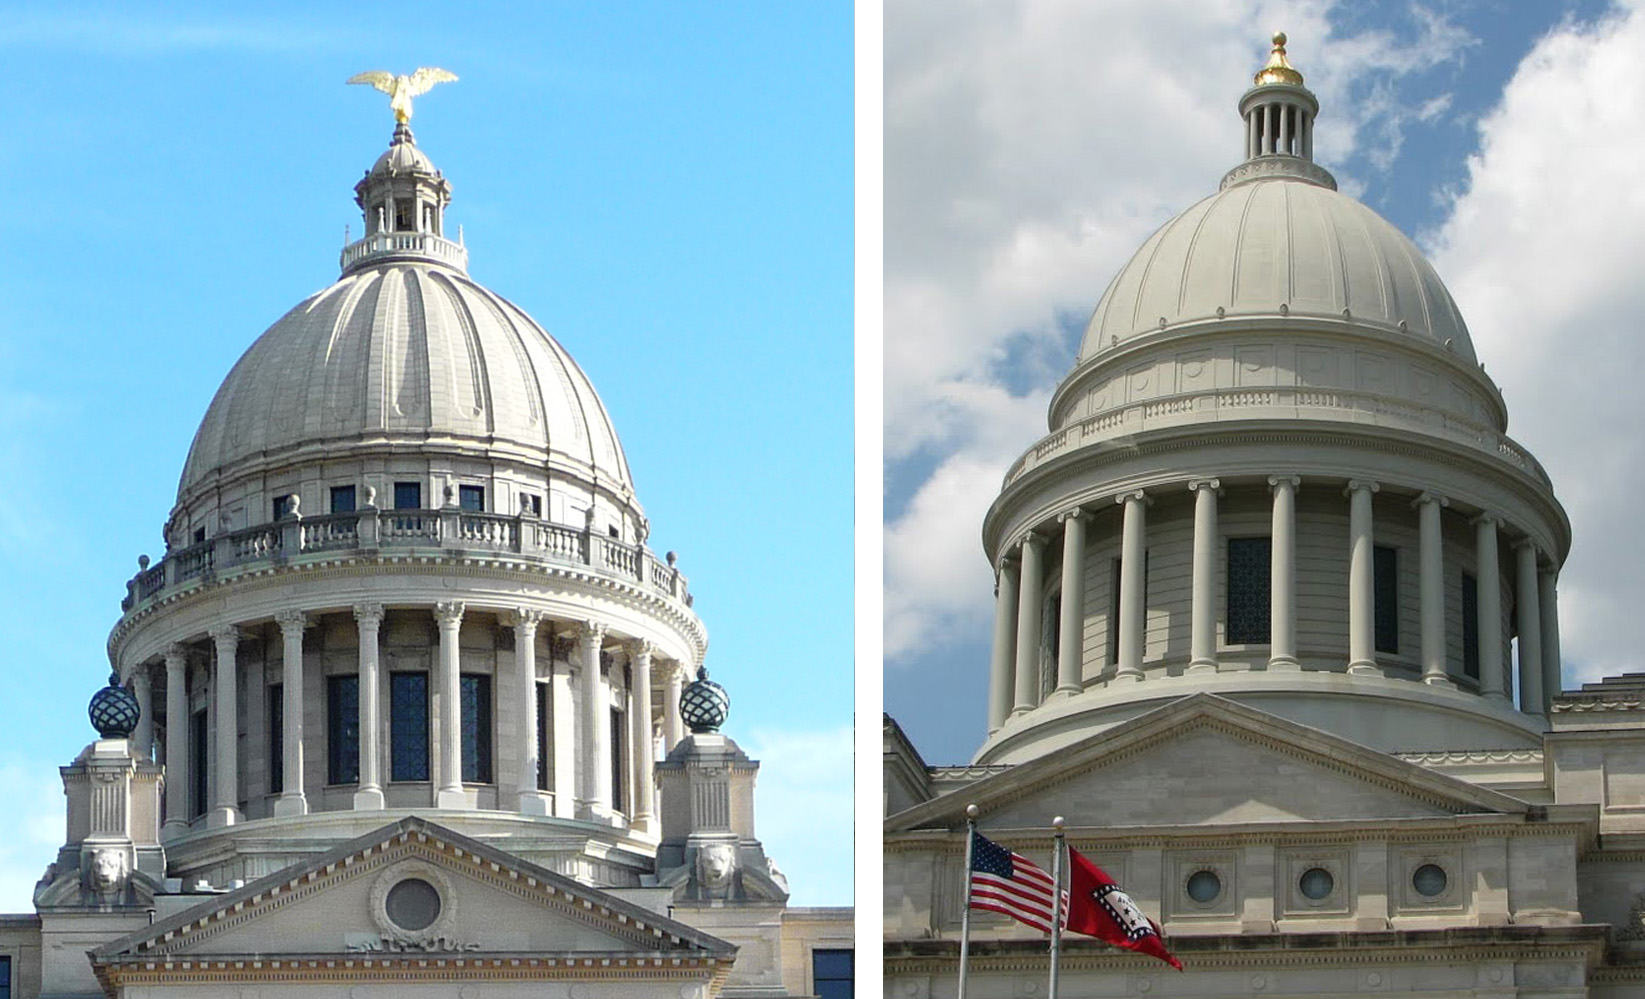 A tale of two domes mississippi and arkansas preservation in mississippi state capitol malvernweather Images